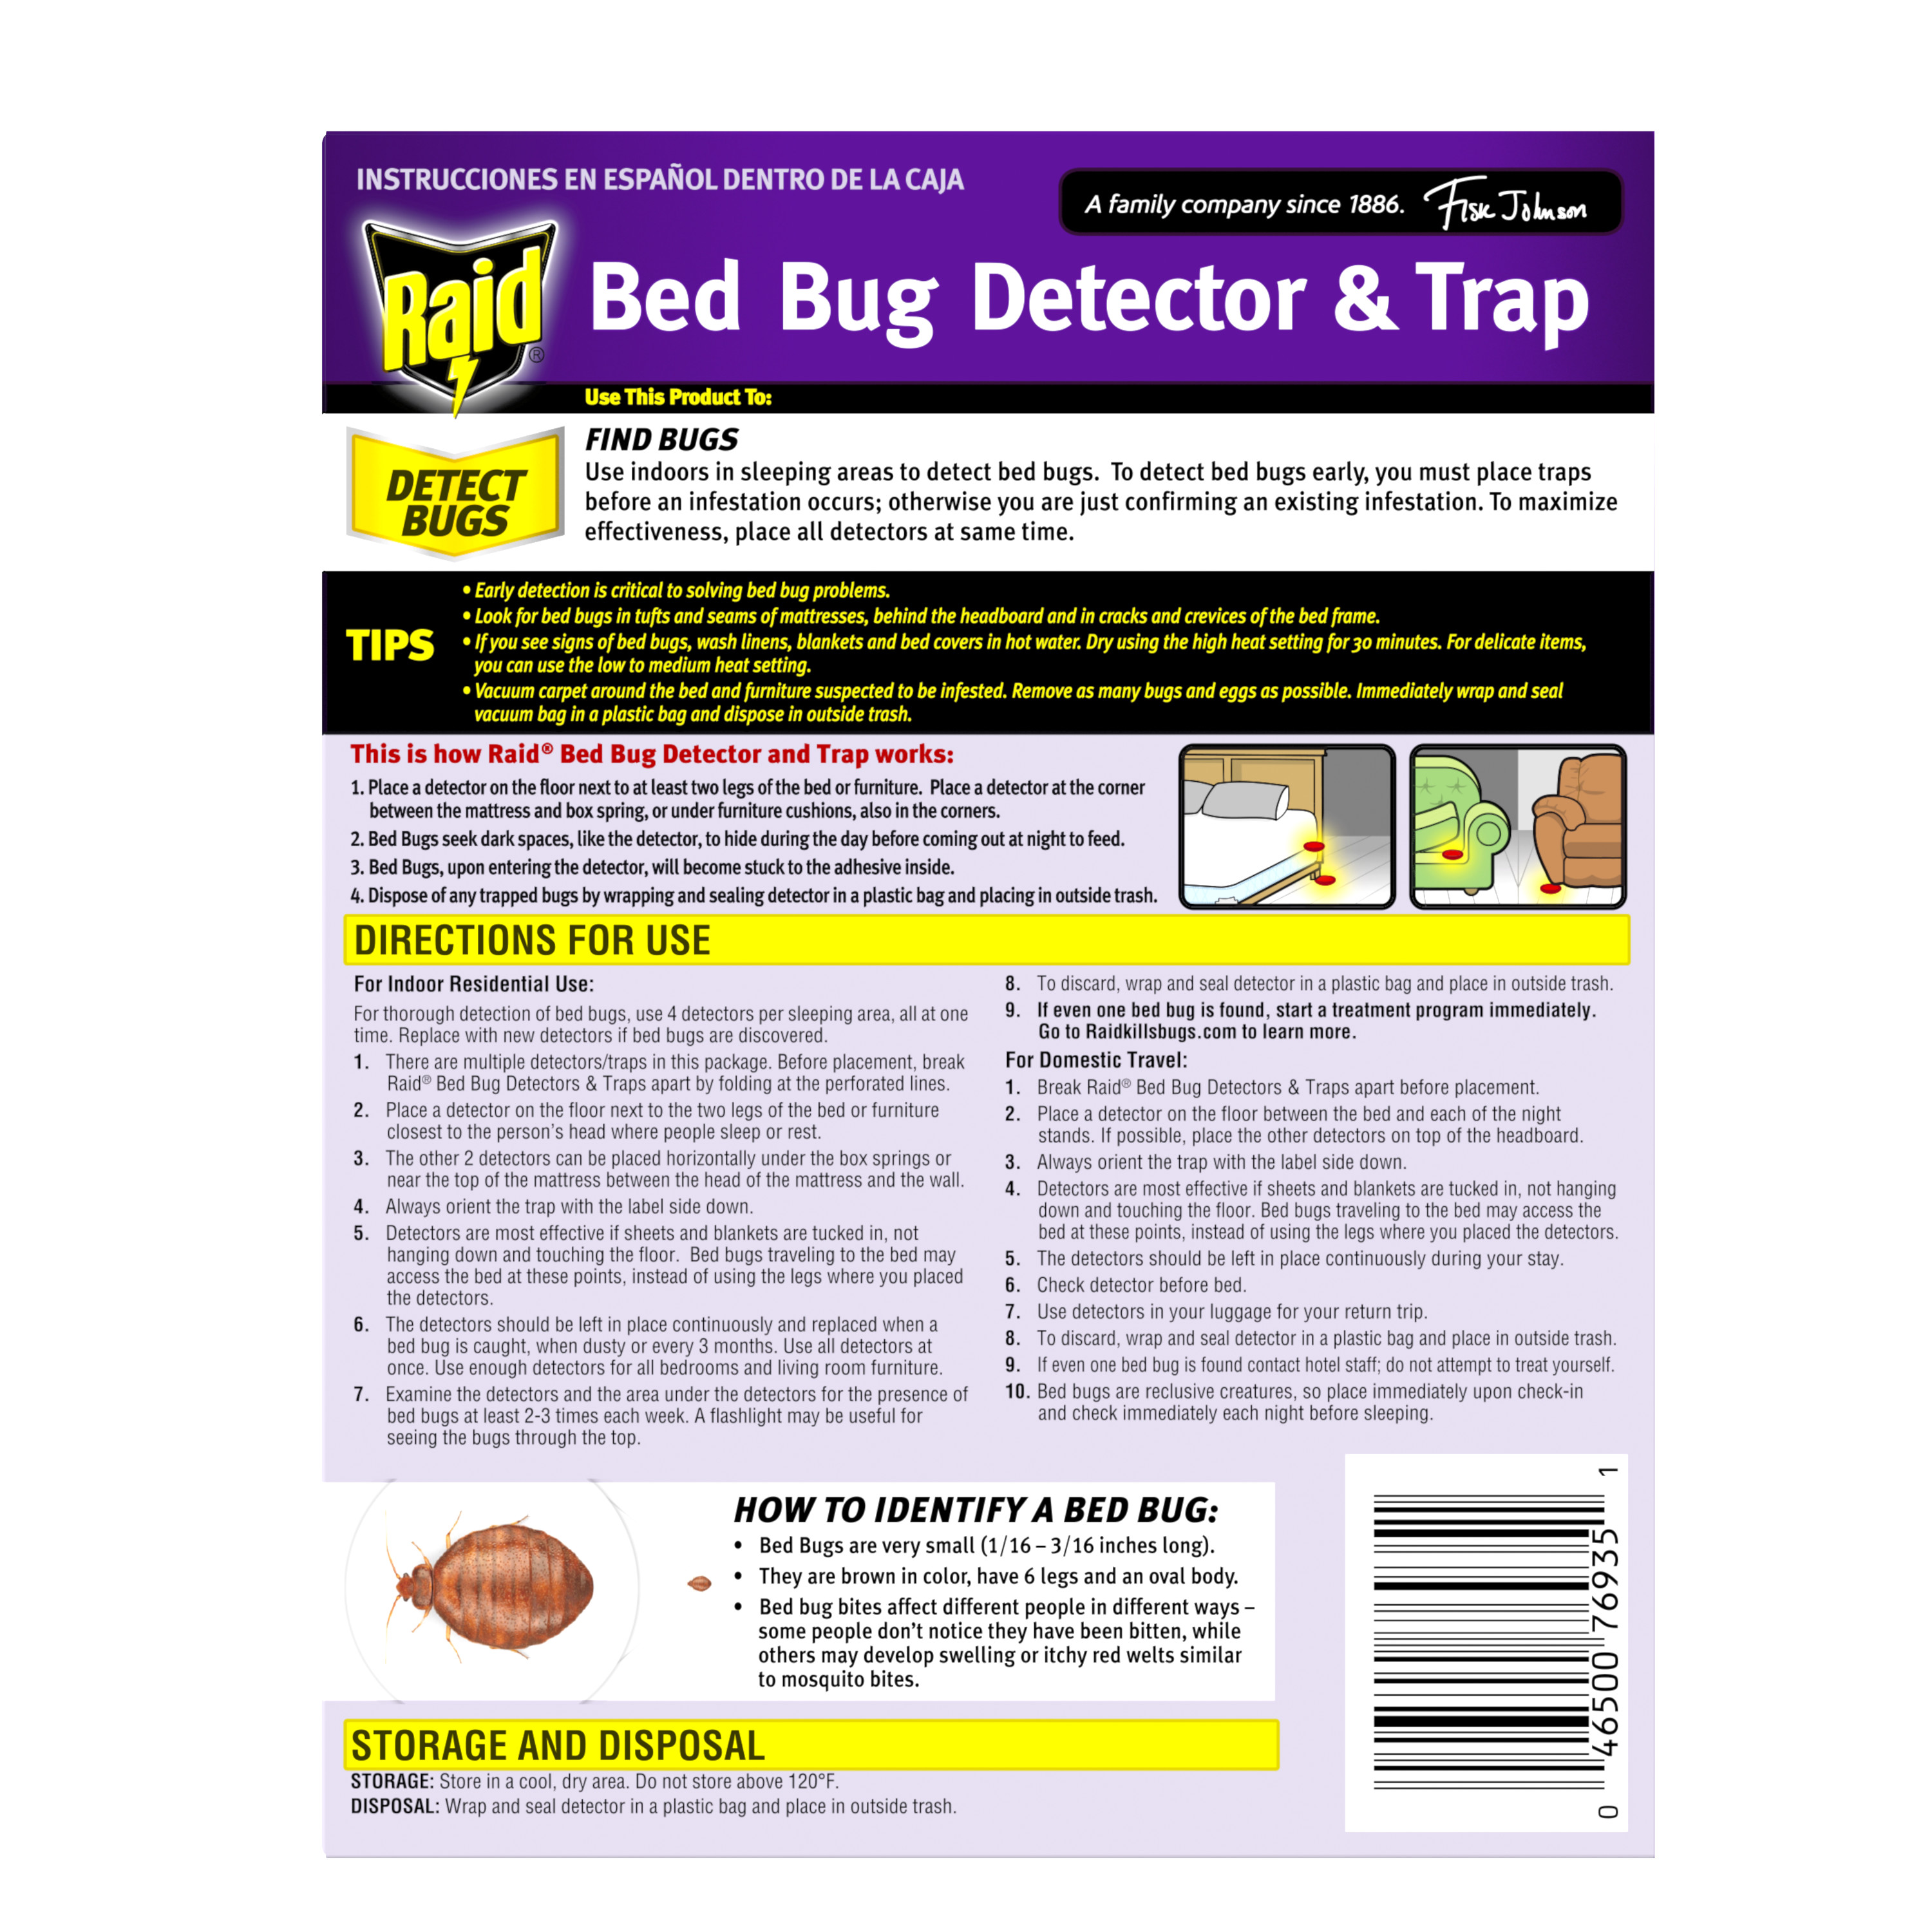 cycle bed nymphs of to bedbug and in bites life get find how bugs spot characteristics eggs rid things infested stages treatment detect detections i garbage bedbugs bug adult introduction